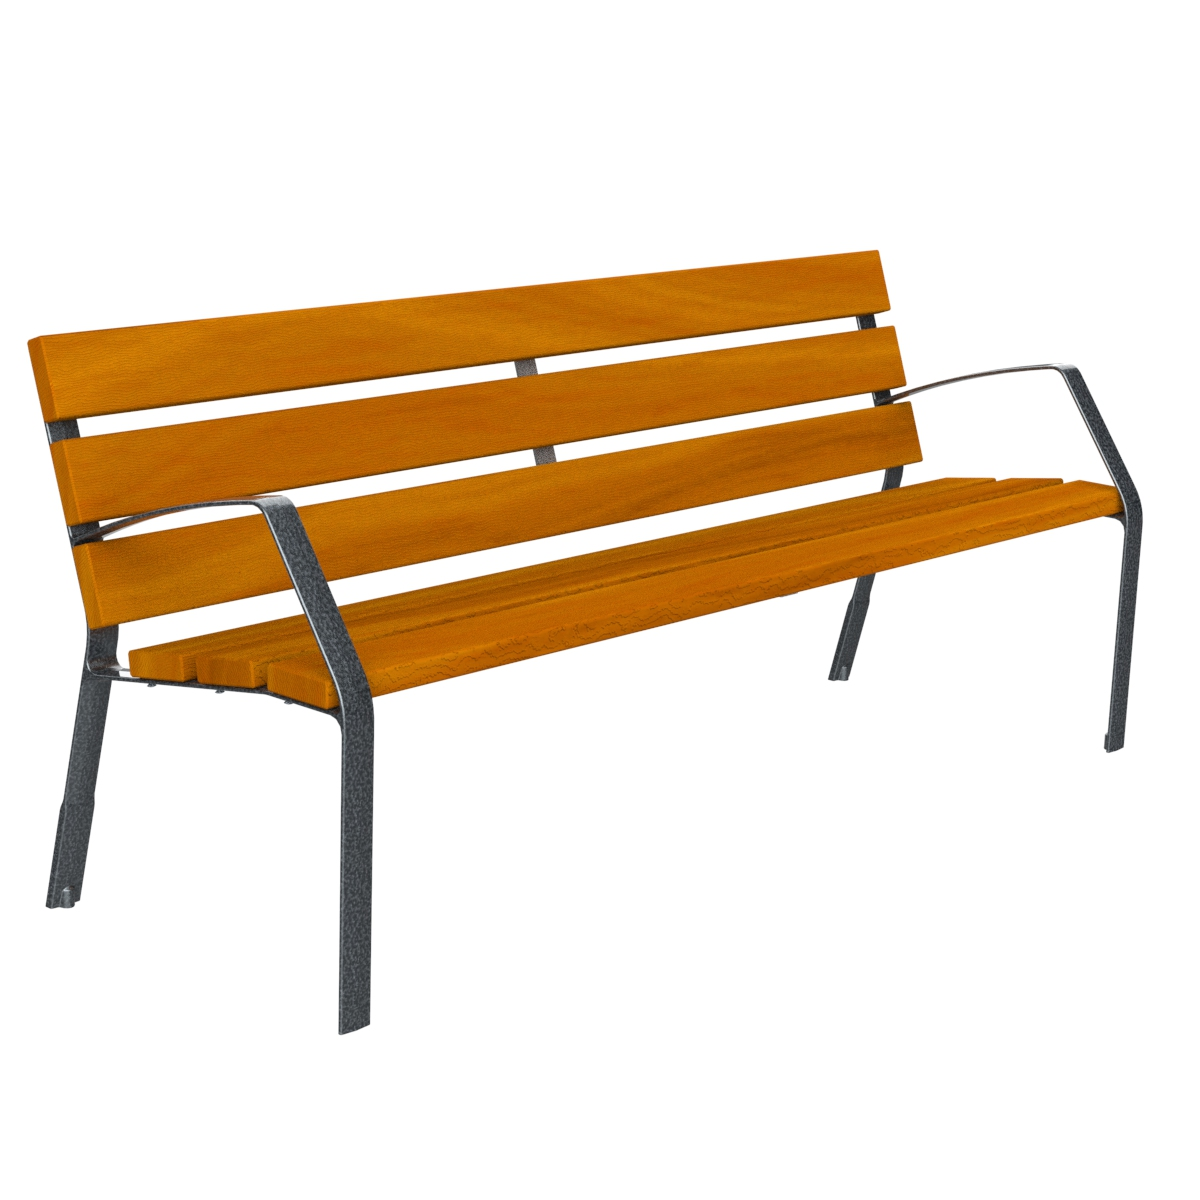 Bench Modo10 tropical wood and ductile cast iron legs